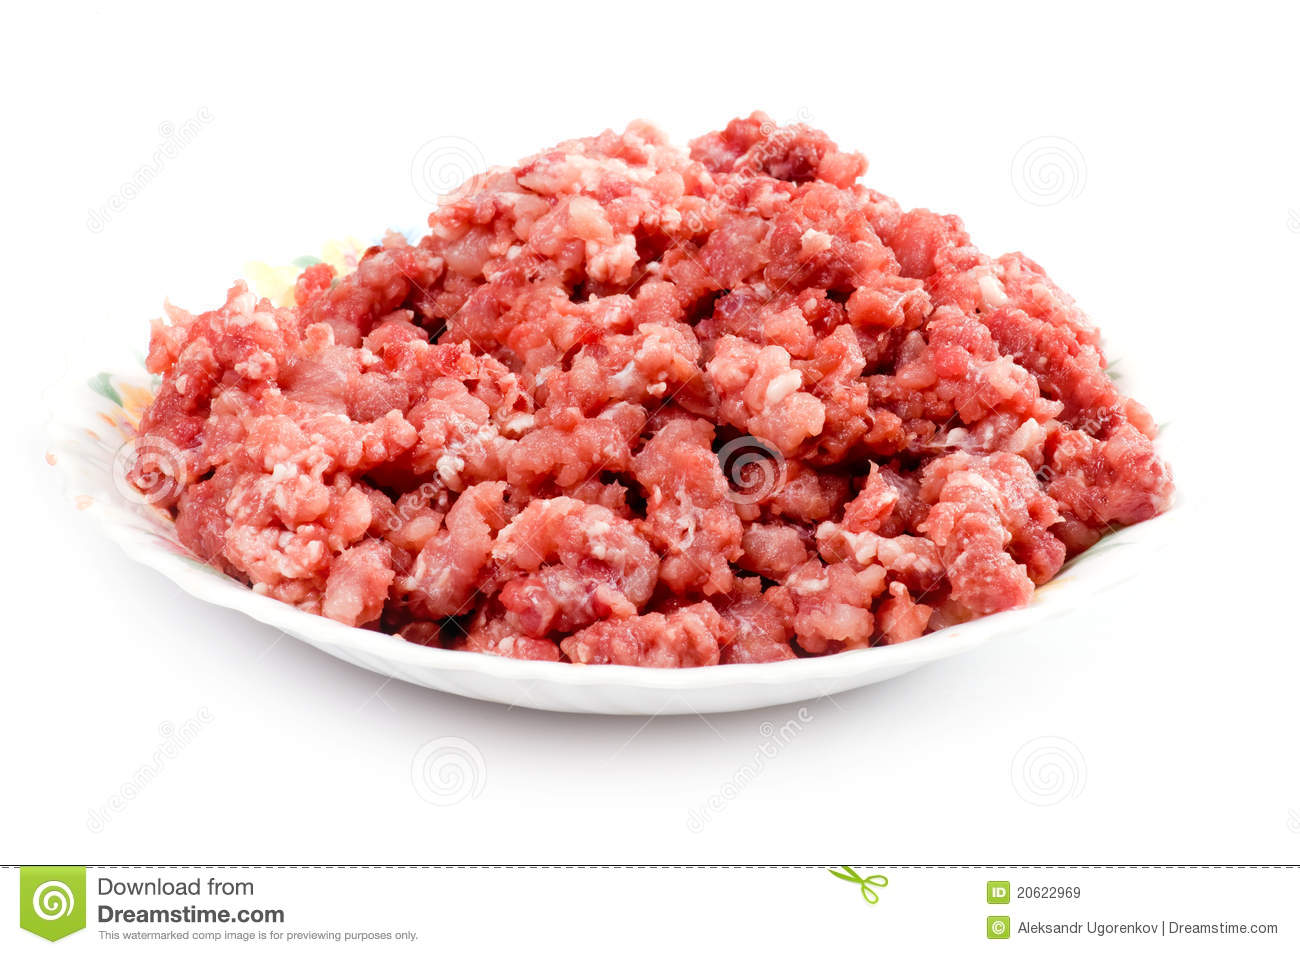 Mince meat on plate stock image. Image of close, meaty ...